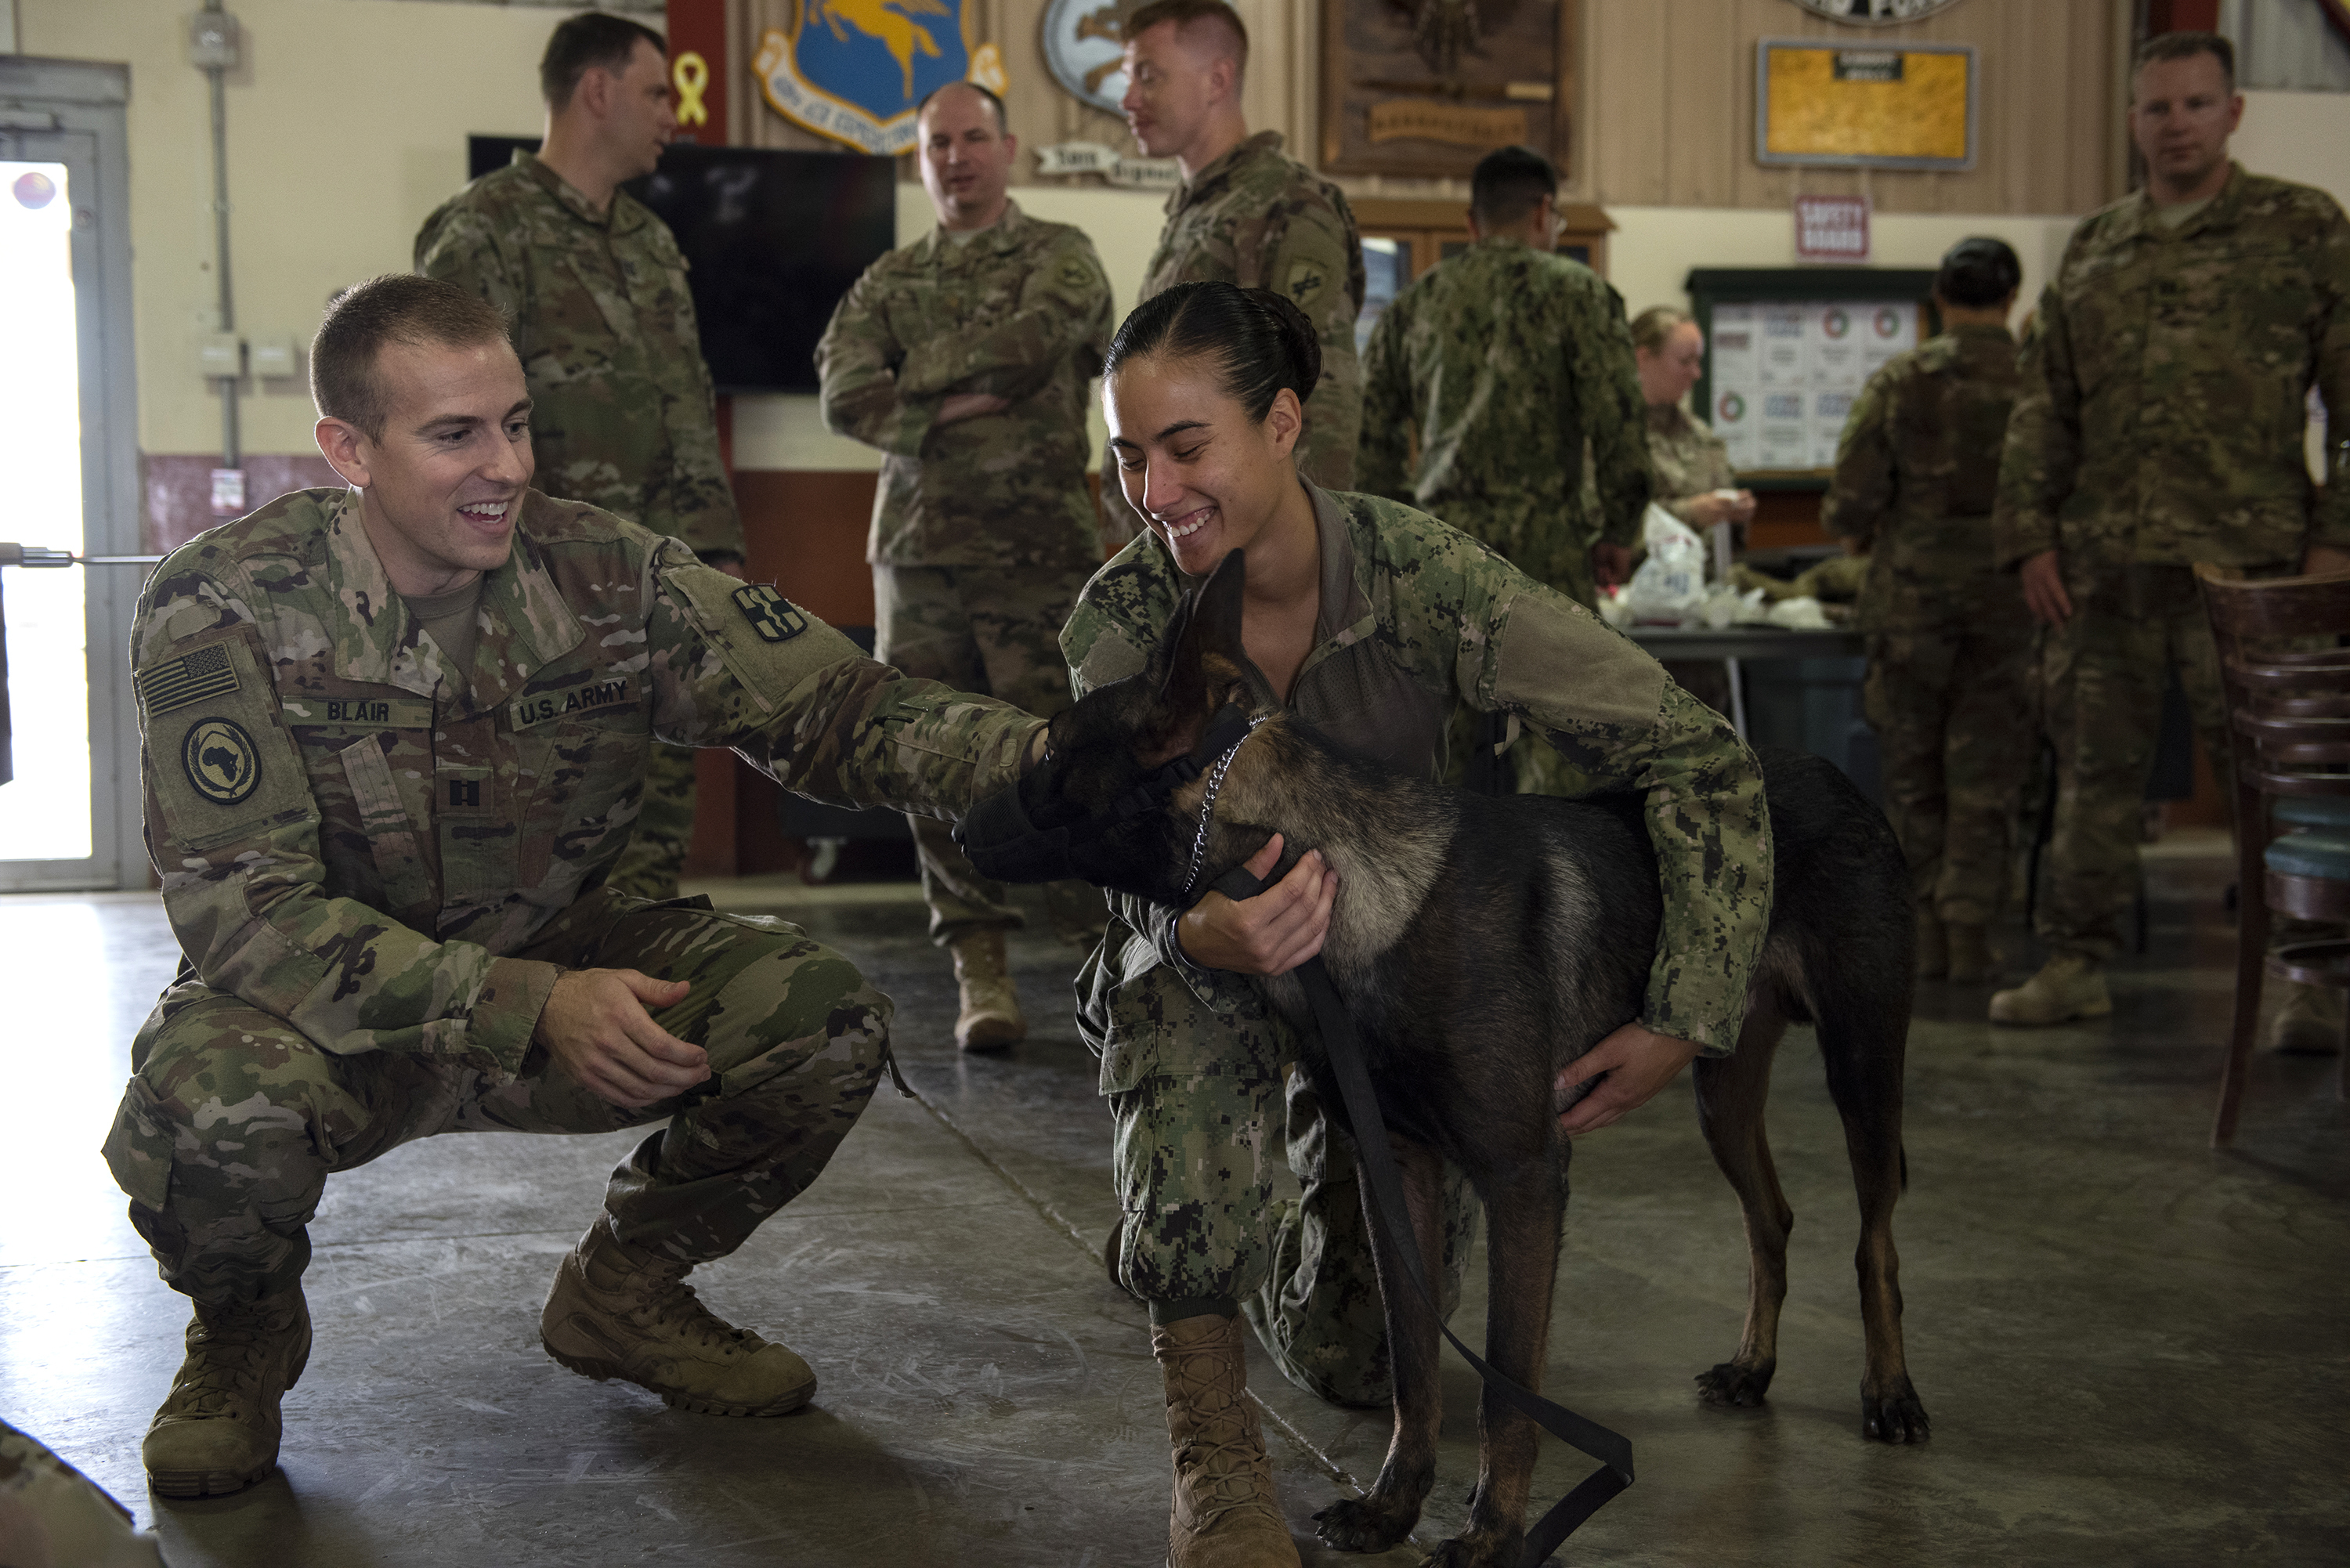 U.S. Army Cpt. Richard Blair, veterinarian, greets U.S. Navy Master-at-Arms 1st Class Kristina Vargas, a military working dog (MWD) handler and MWD Pponder on Camp Lemonnier, Djibouti, Aug. 18, 2018. Blair, Vargas and Pponder were participating in Canine Tactical Combat Casualty Care training for service members. (U.S. Air National Guard photo by Master Sgt. Sarah Mattison)